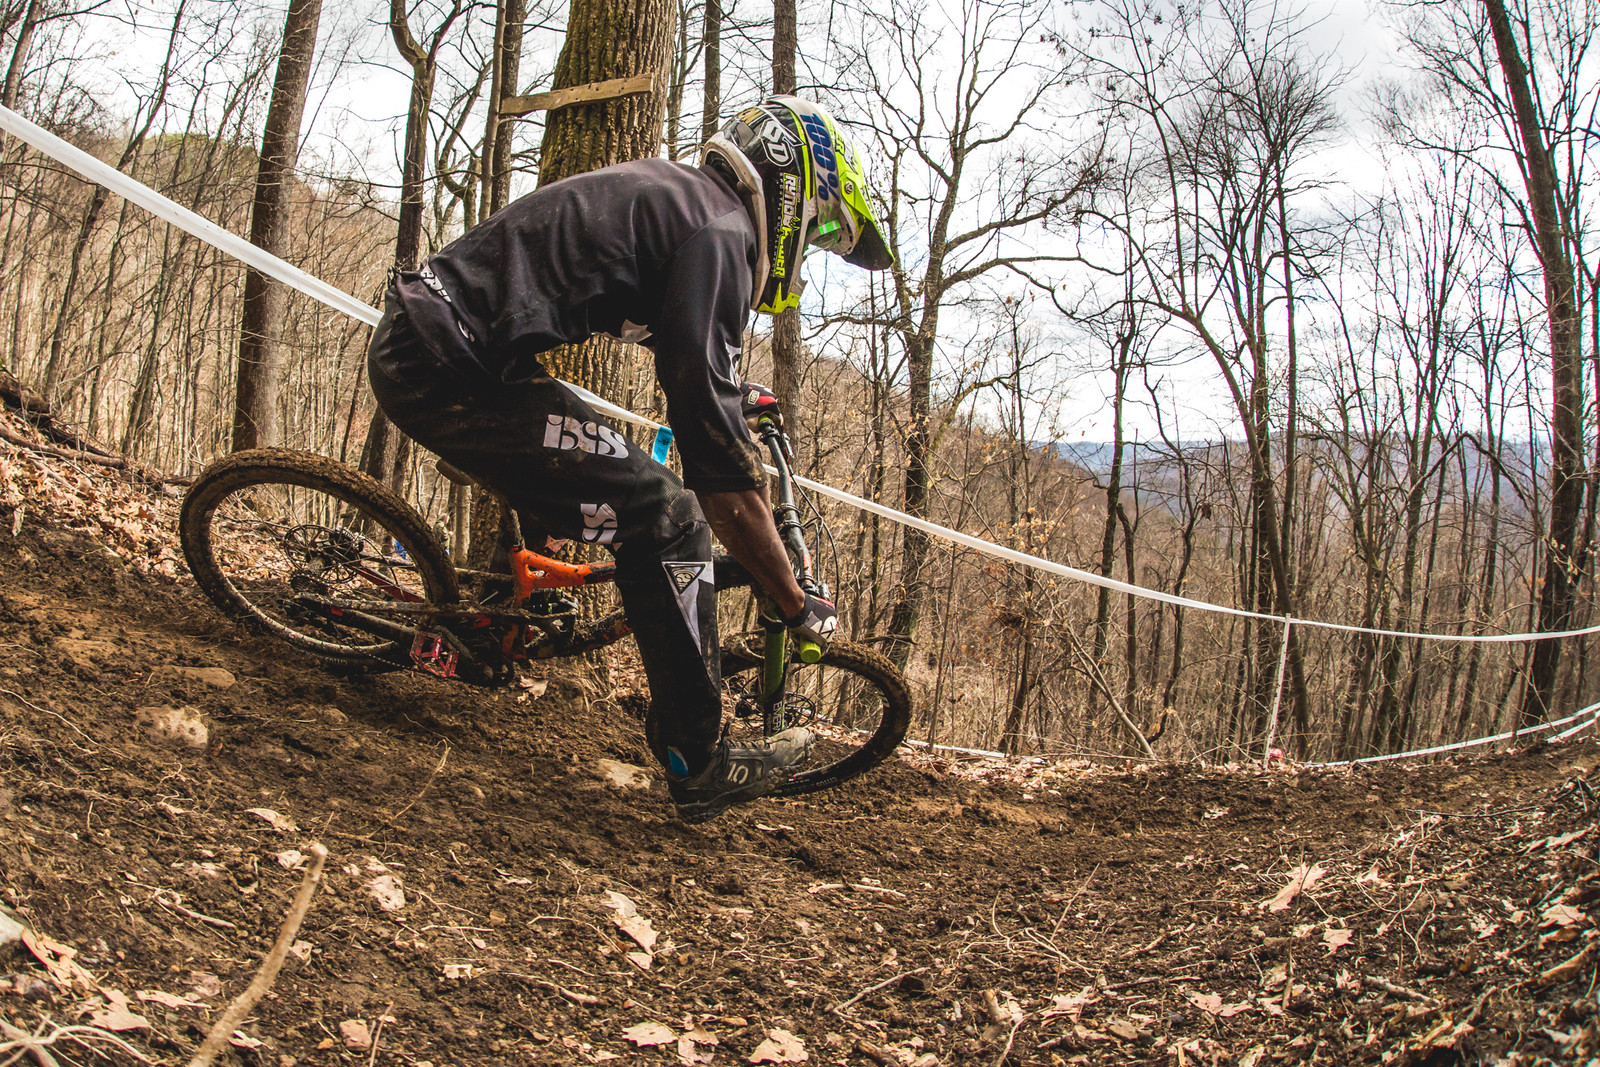 Cody Johnson - Greasy Goodness from the Pro GRT Windrock - Mountain Biking Pictures - Vital MTB